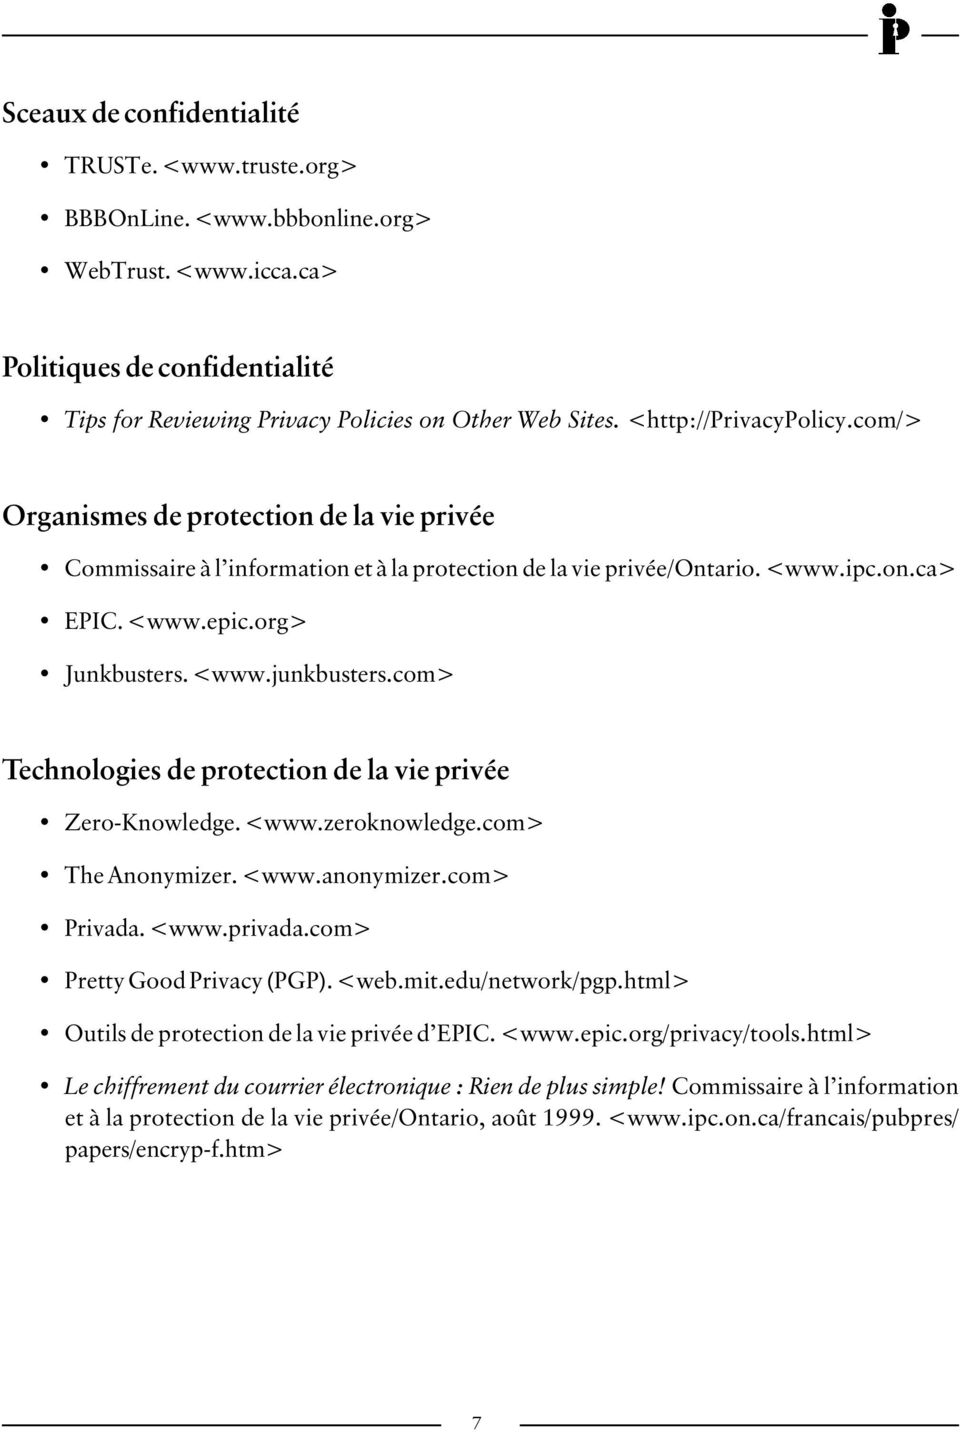 com> Technologies de protection de la vie privée Zero-Knowledge. <www.zeroknowledge.com> The Anonymizer. <www.anonymizer.com> Privada. <www.privada.com> Pretty Good Privacy (PGP). <web.mit.